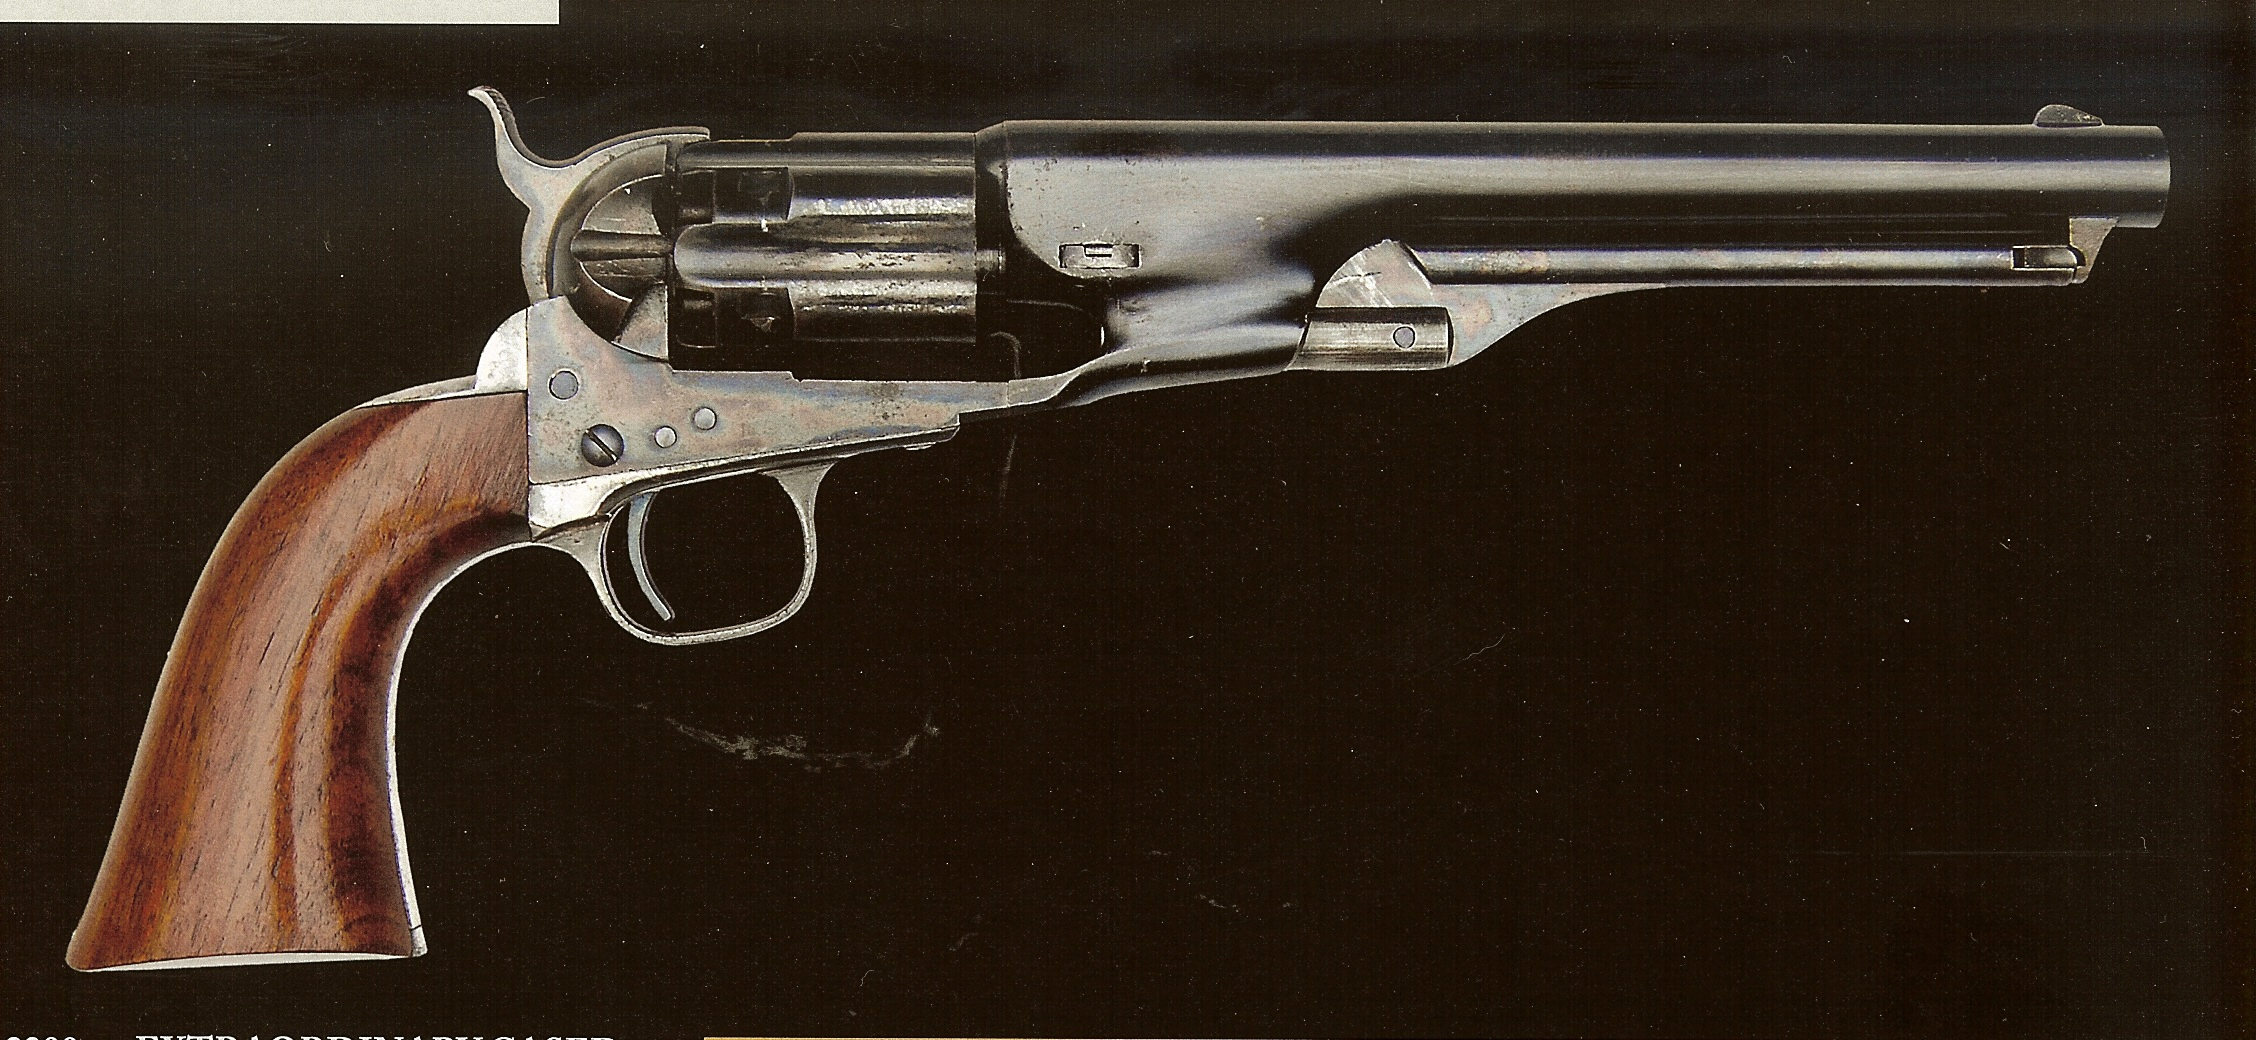 What's the Most Beautiful Handgun Ever Made?